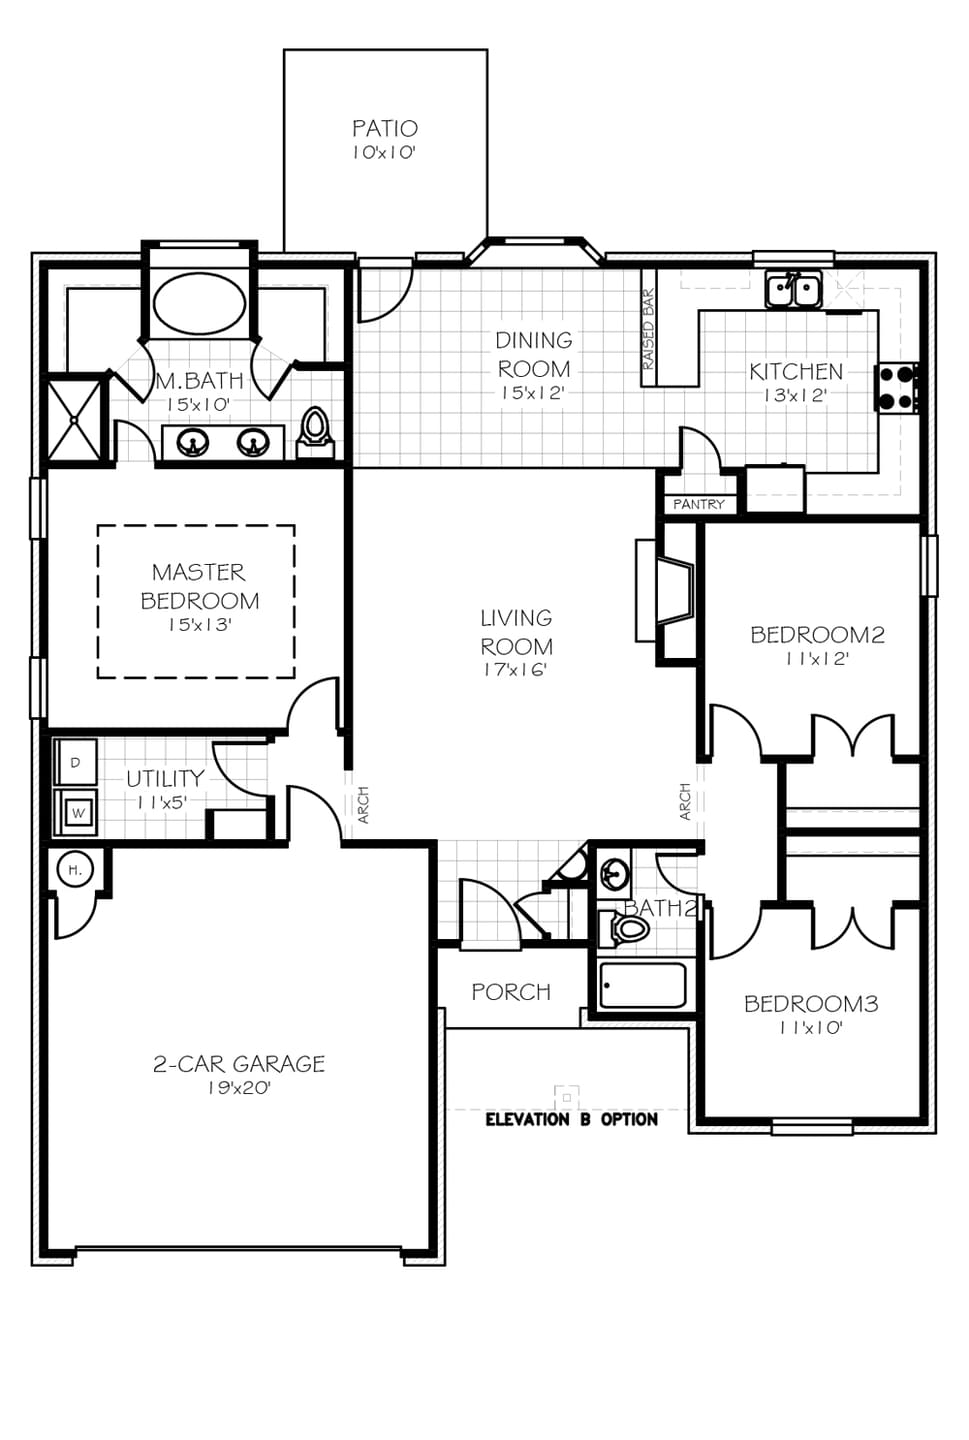 Home creations floor plans home design and style for Elite home designs